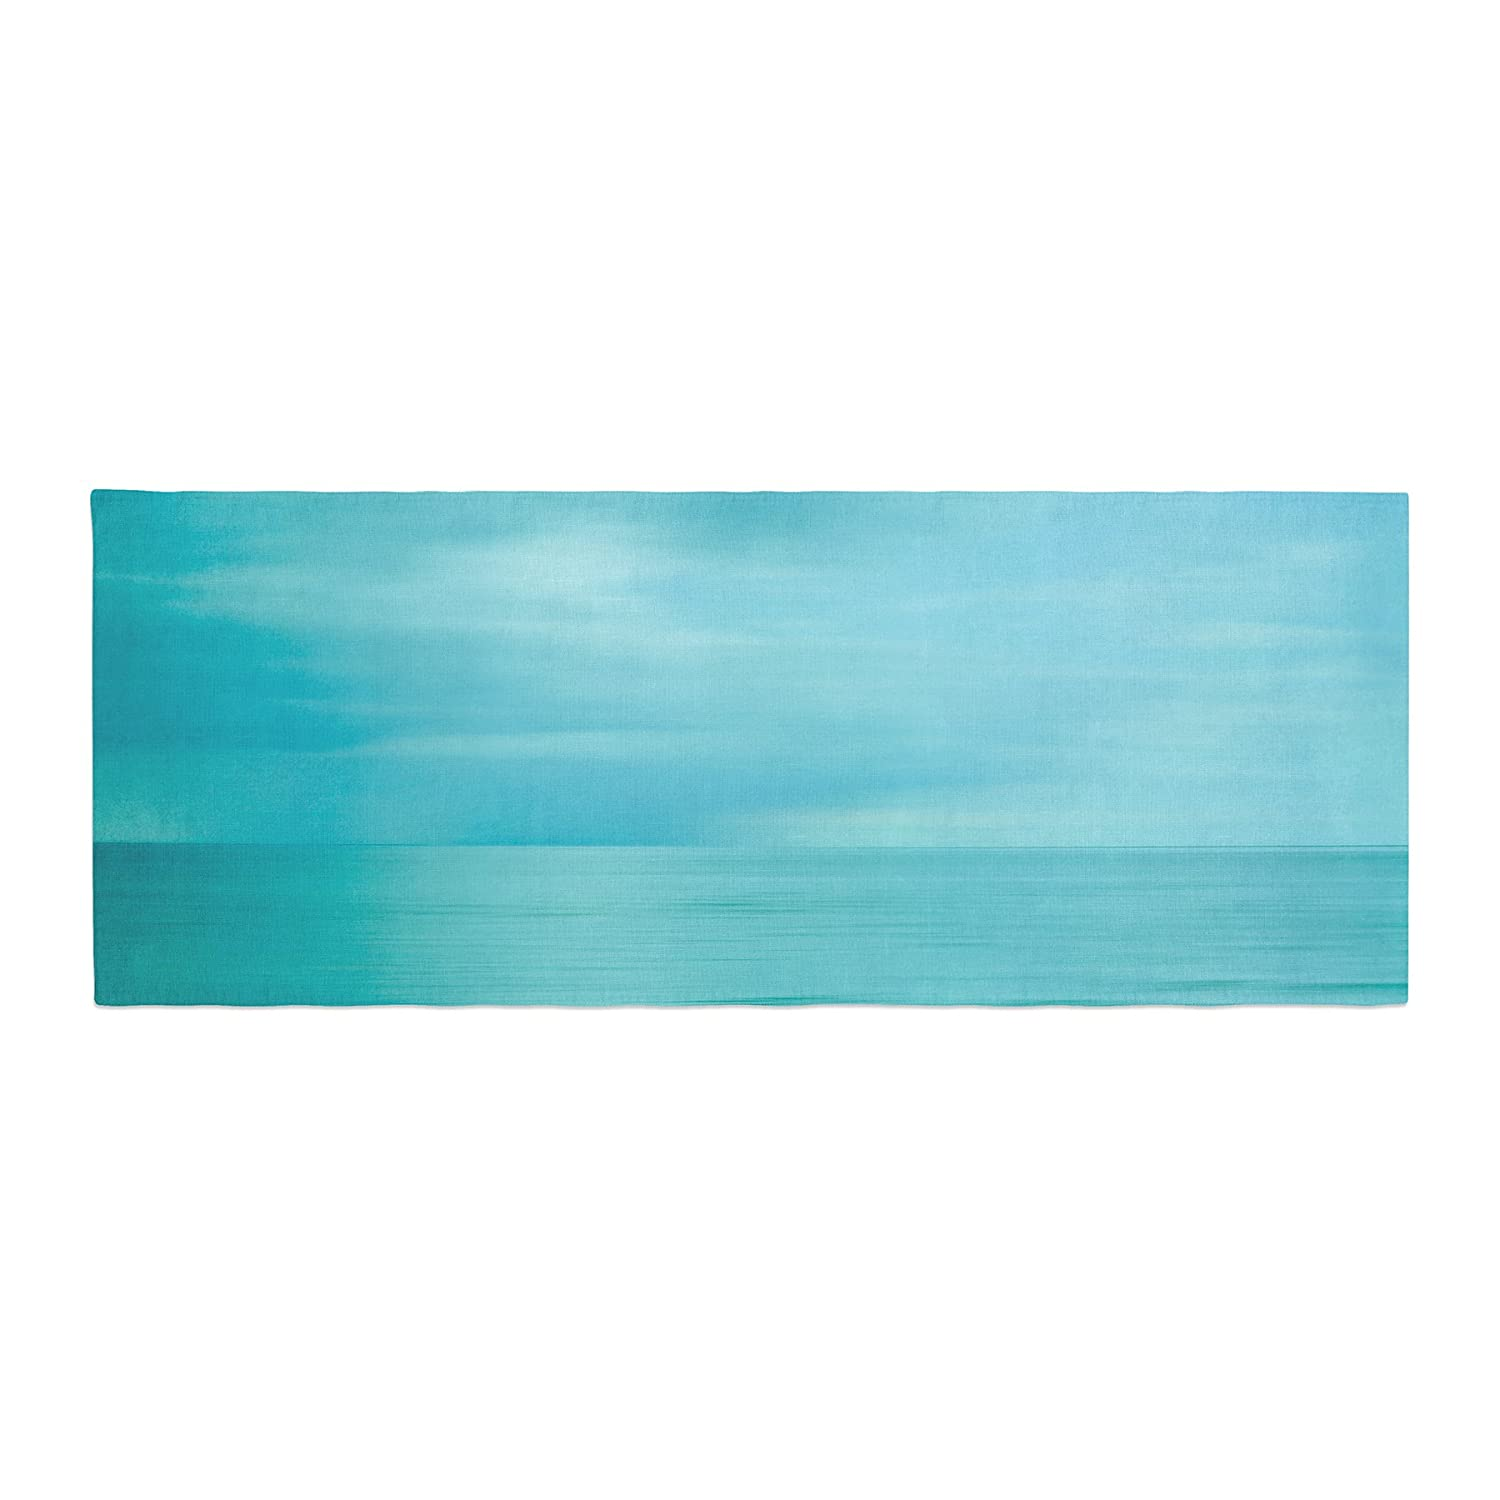 Kess InHouse Iris Lehnhardt Calm Sea Blue Teal Bed Runner, 34 x 86 34 x 86 IL2049ABR01